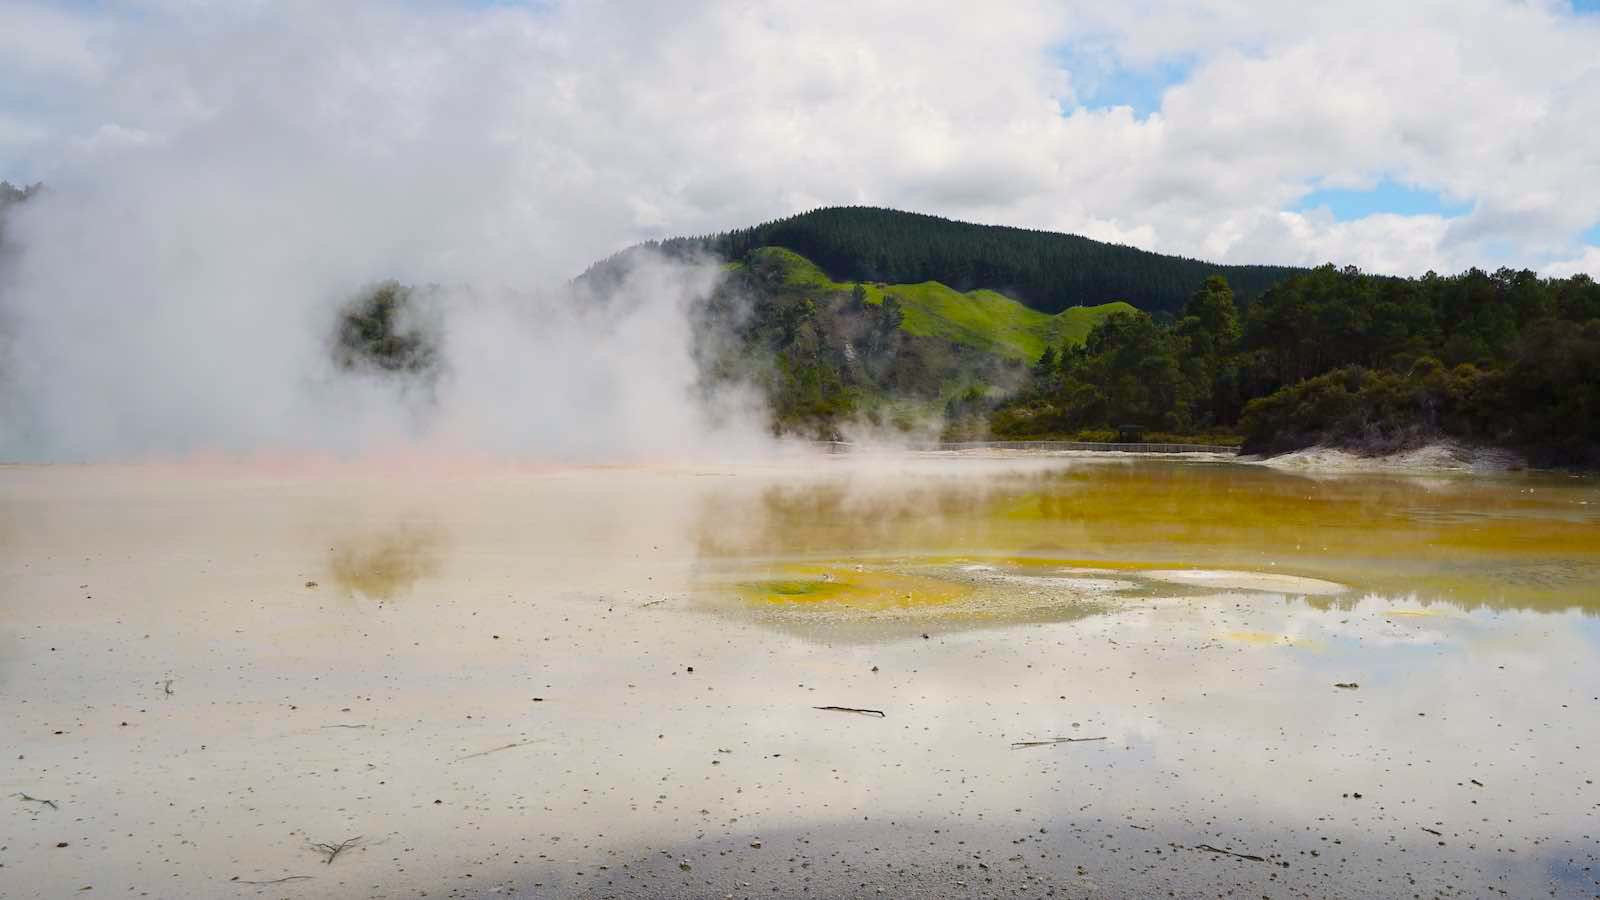 There were large swaths of boiling water like this all over Wai-o-tapu, often with different colors of green, yellow, orange, brown, like someone spilled paint in a lake